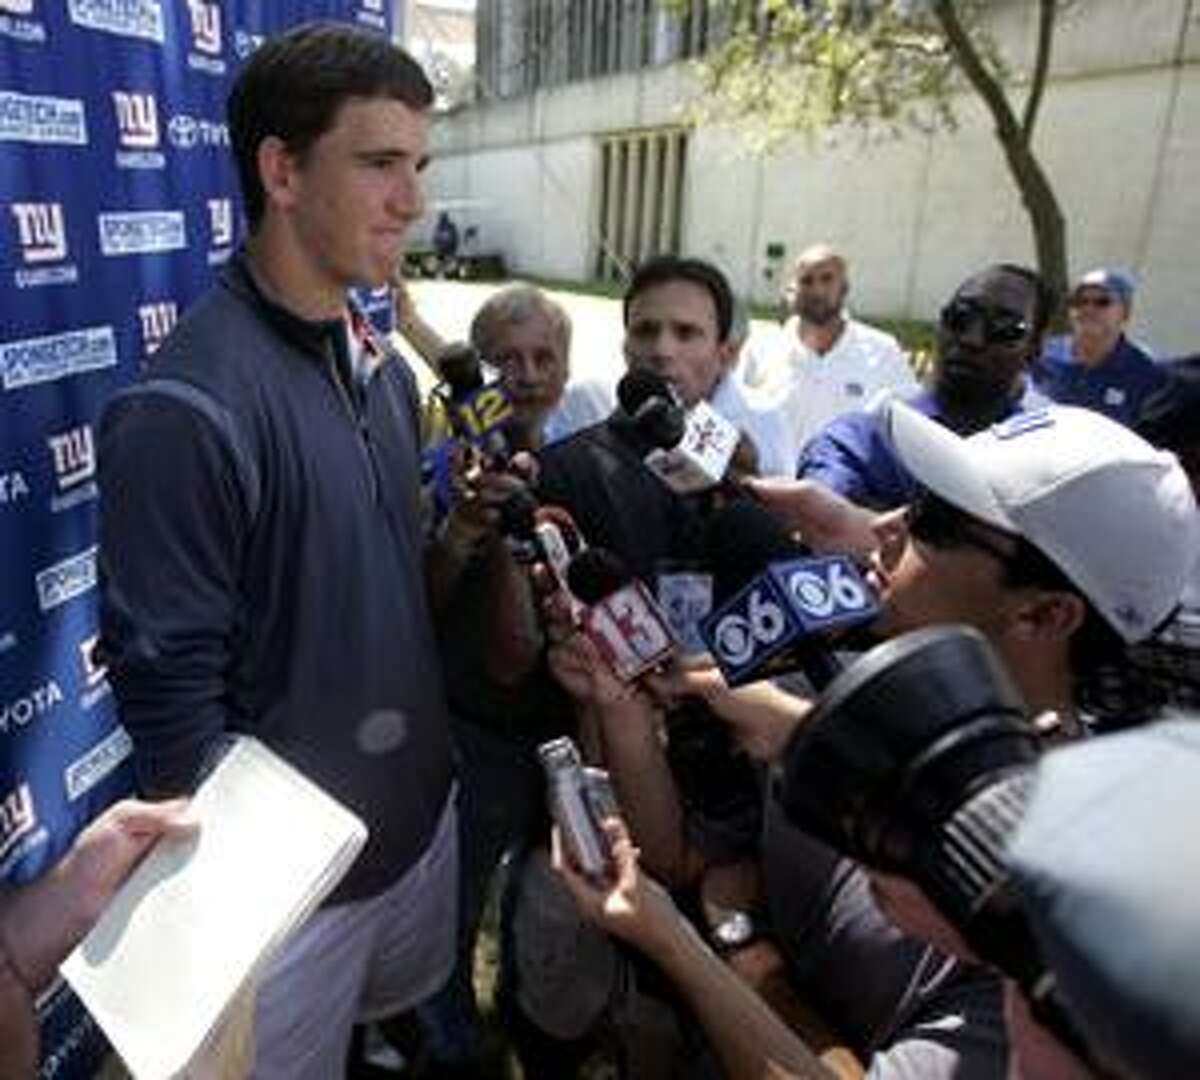 AP New York Giants quarterback Eli Manning talks to reporters during training camp in Albany, N.Y., on Friday. Manning finally signed the six-year extension that will make him the NFL's highest paid player with an average salary of roughly $15.3 million. The Giants announced the signing on Friday morning after spending more than a week completing the deal that will keep Manning with the team through the 2015 season.